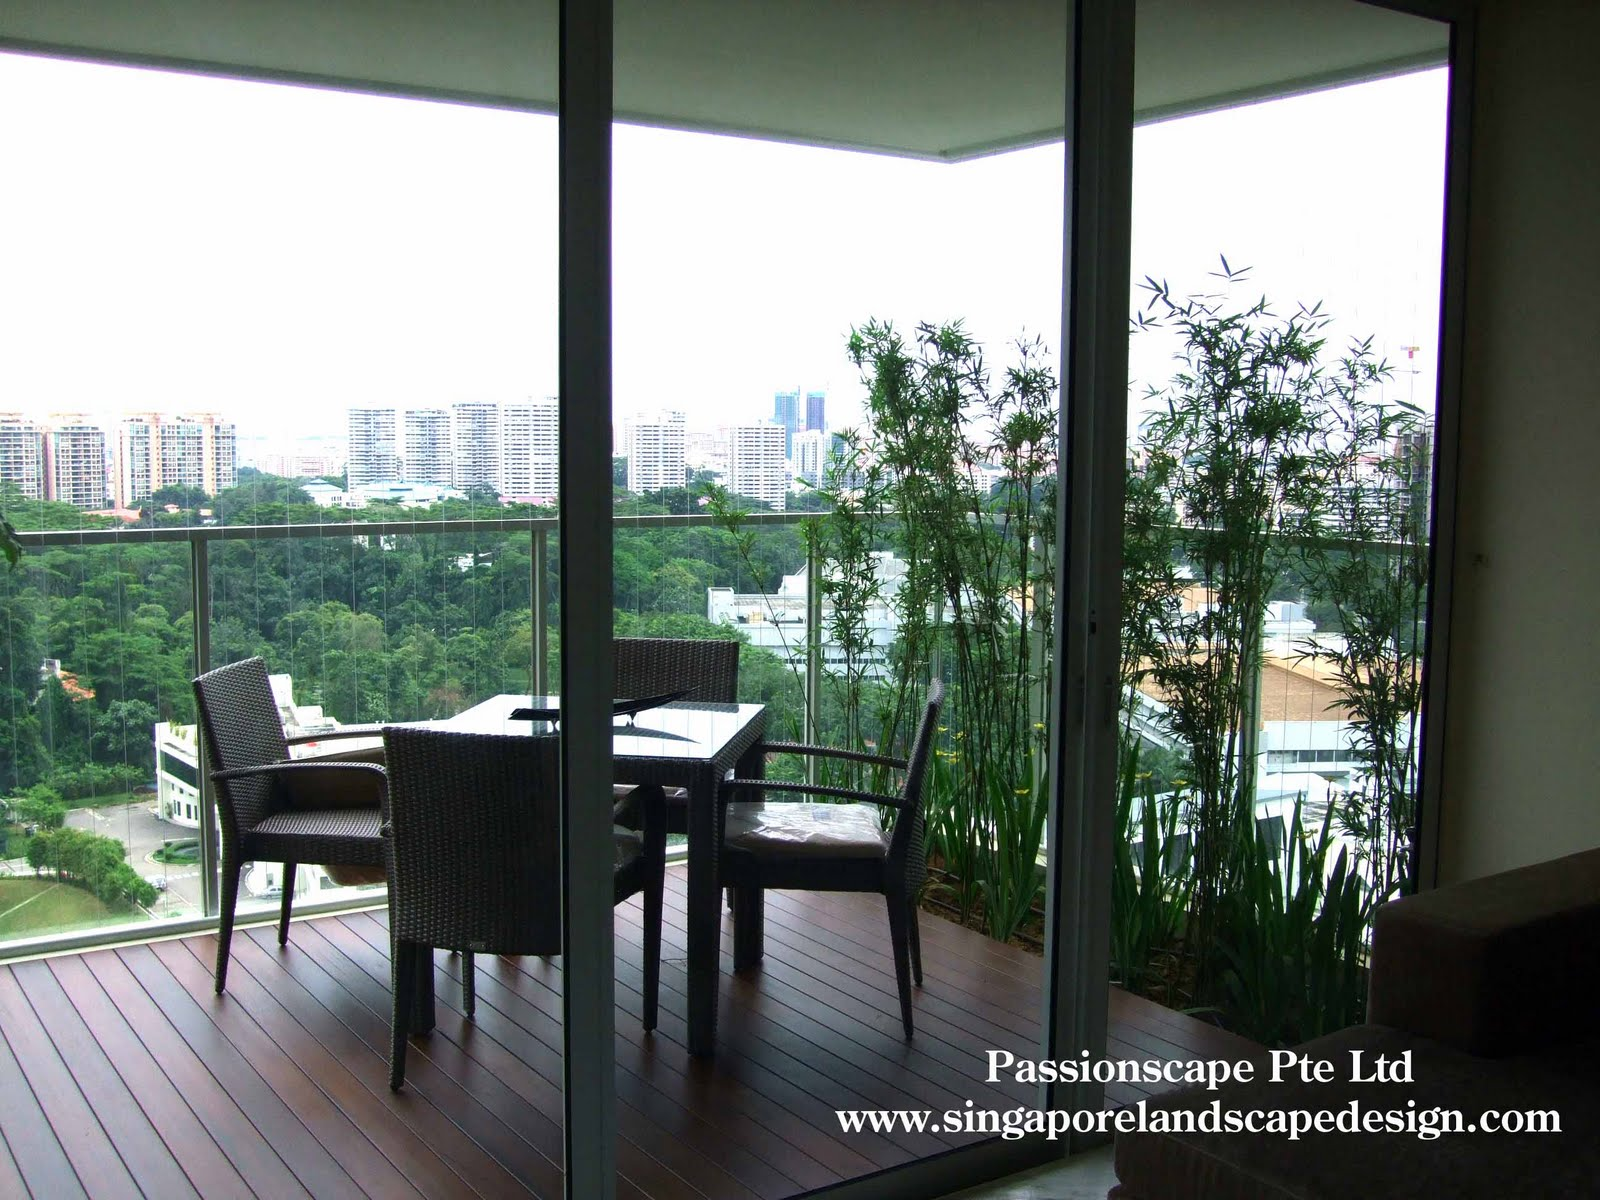 Singapore Landscape Design: Lifestyle Patio 1